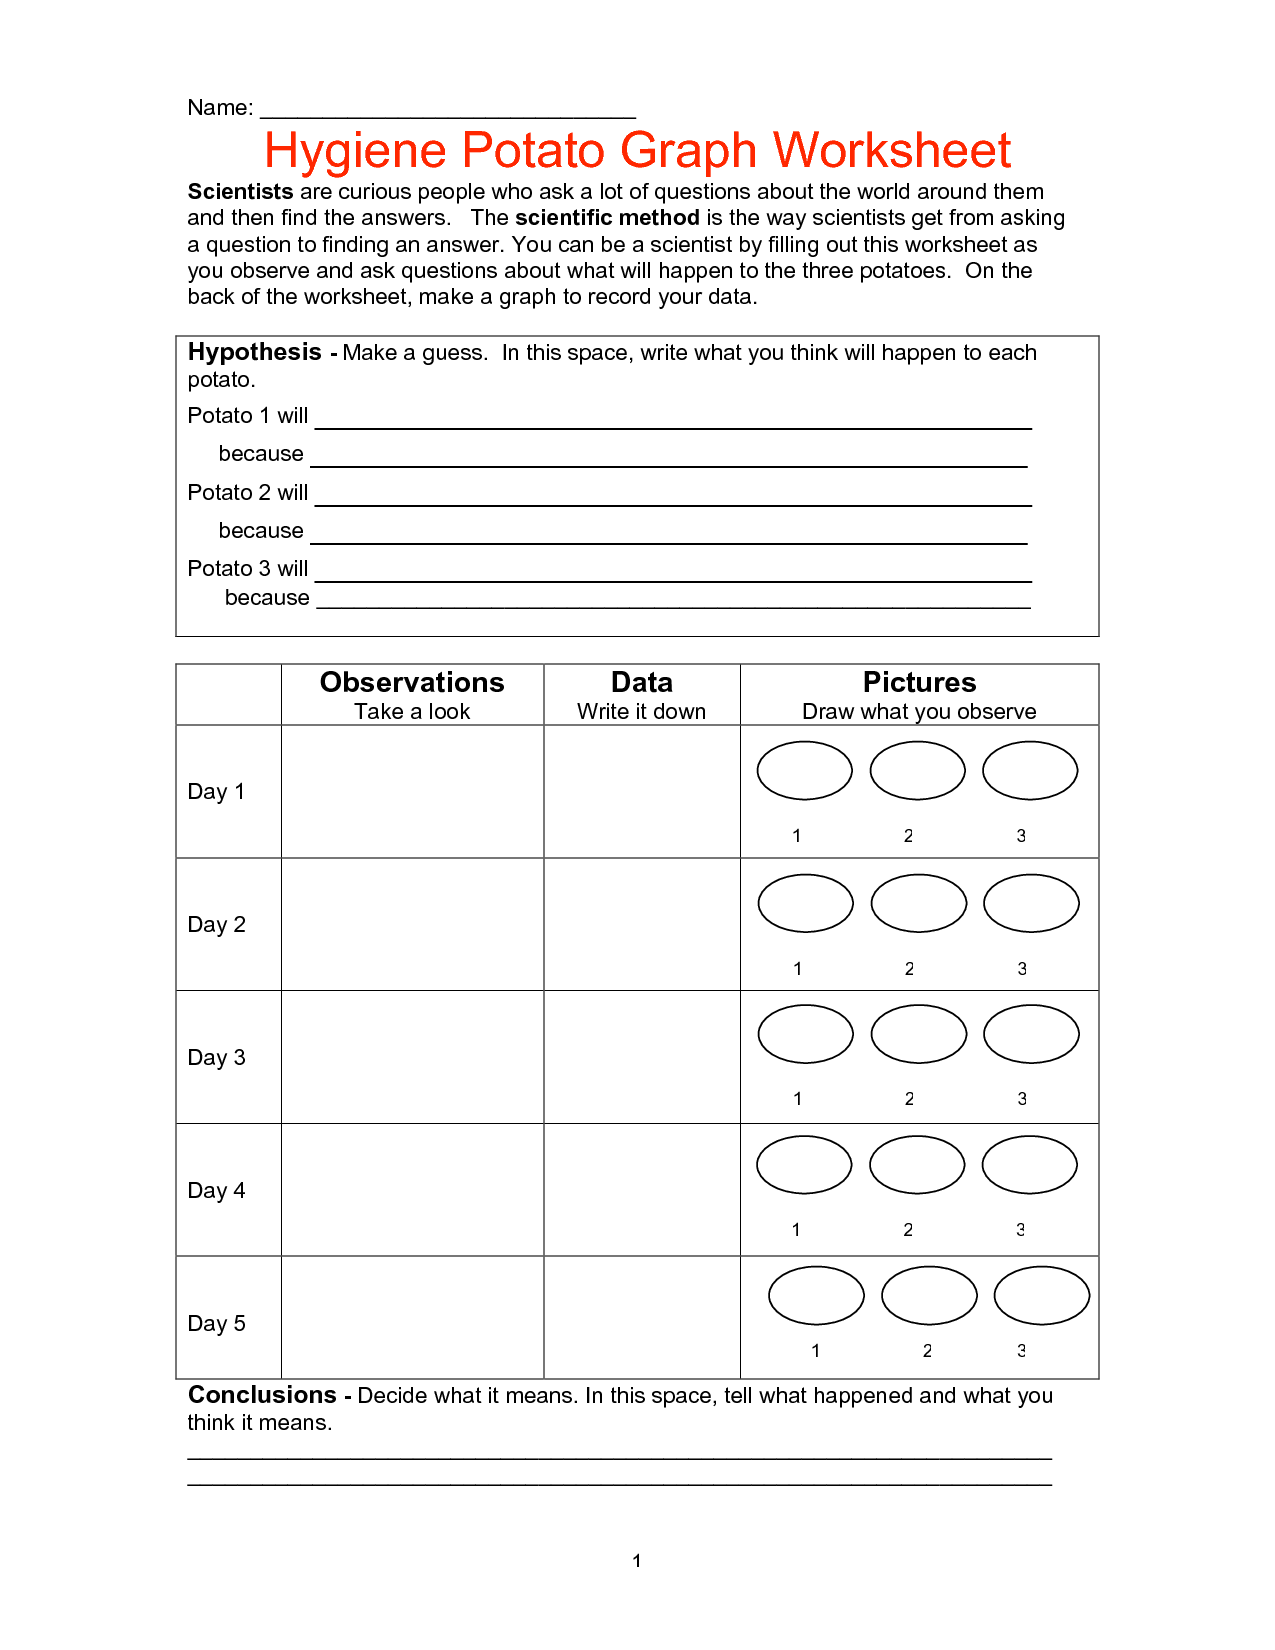 18 Best Images Of Hygiene Worksheets For Adults